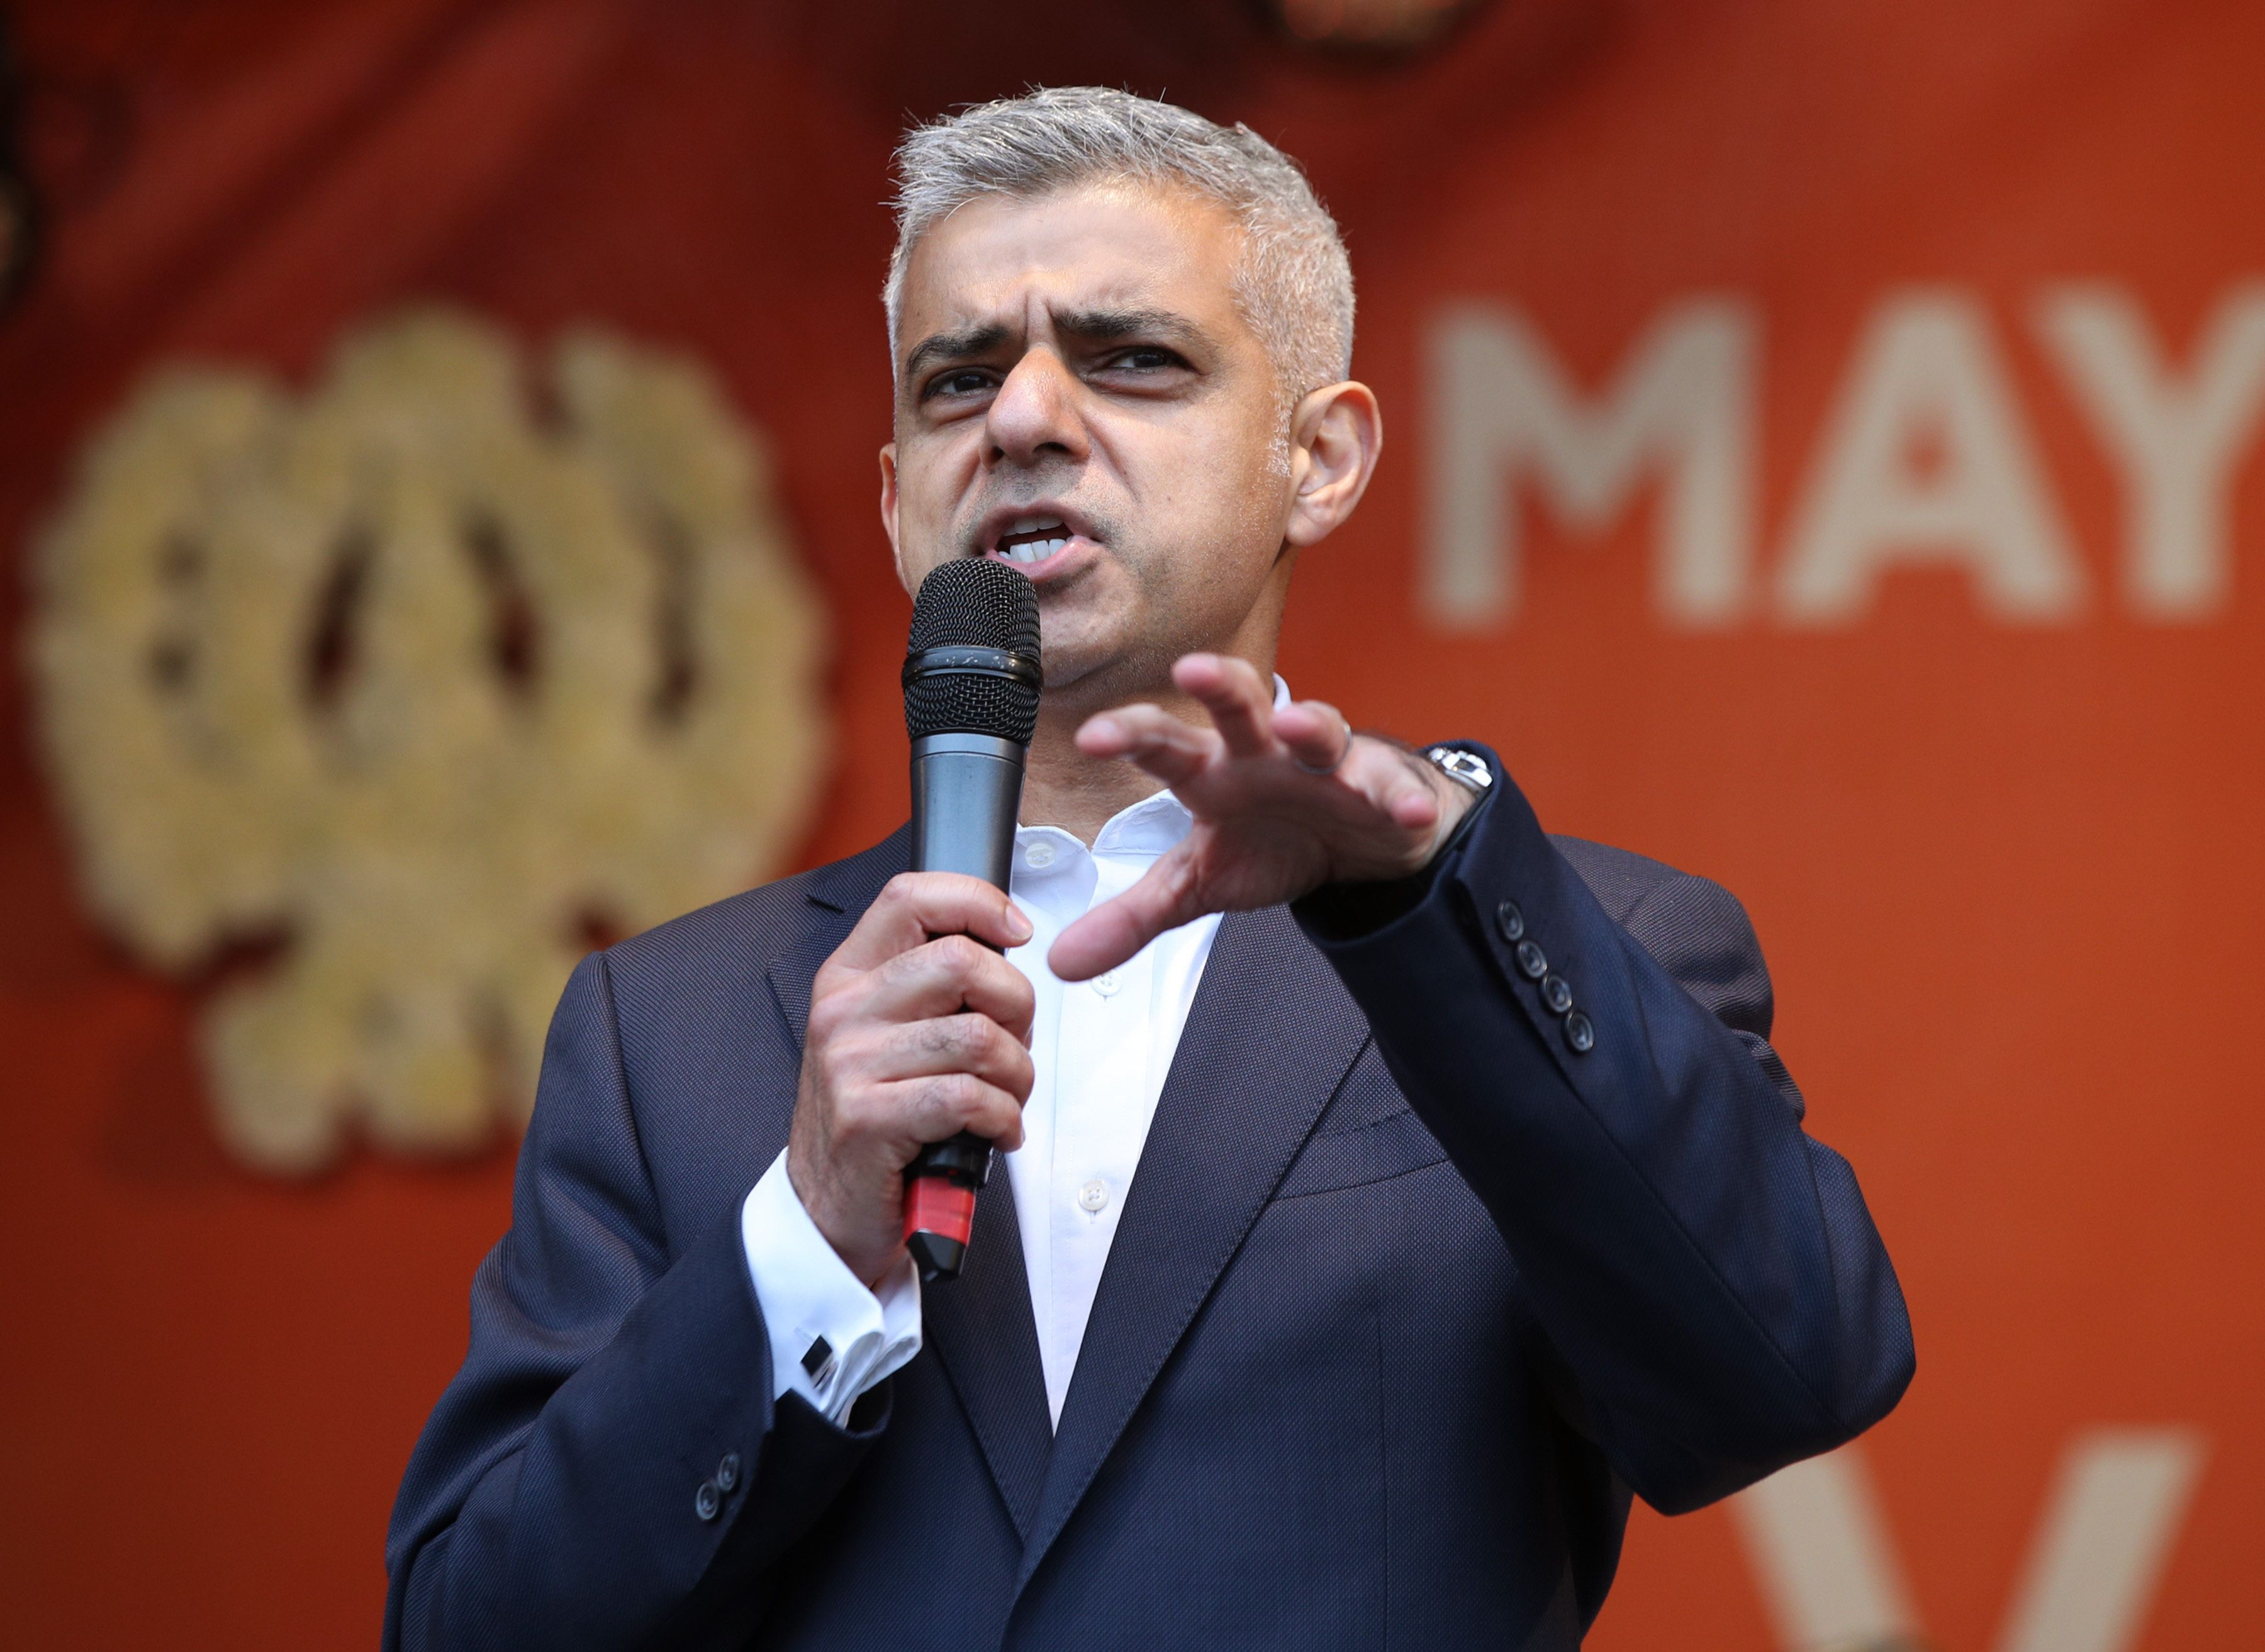 Sadiq Khan said Amber Rudd 'appears completely unaware about what is going on in her own